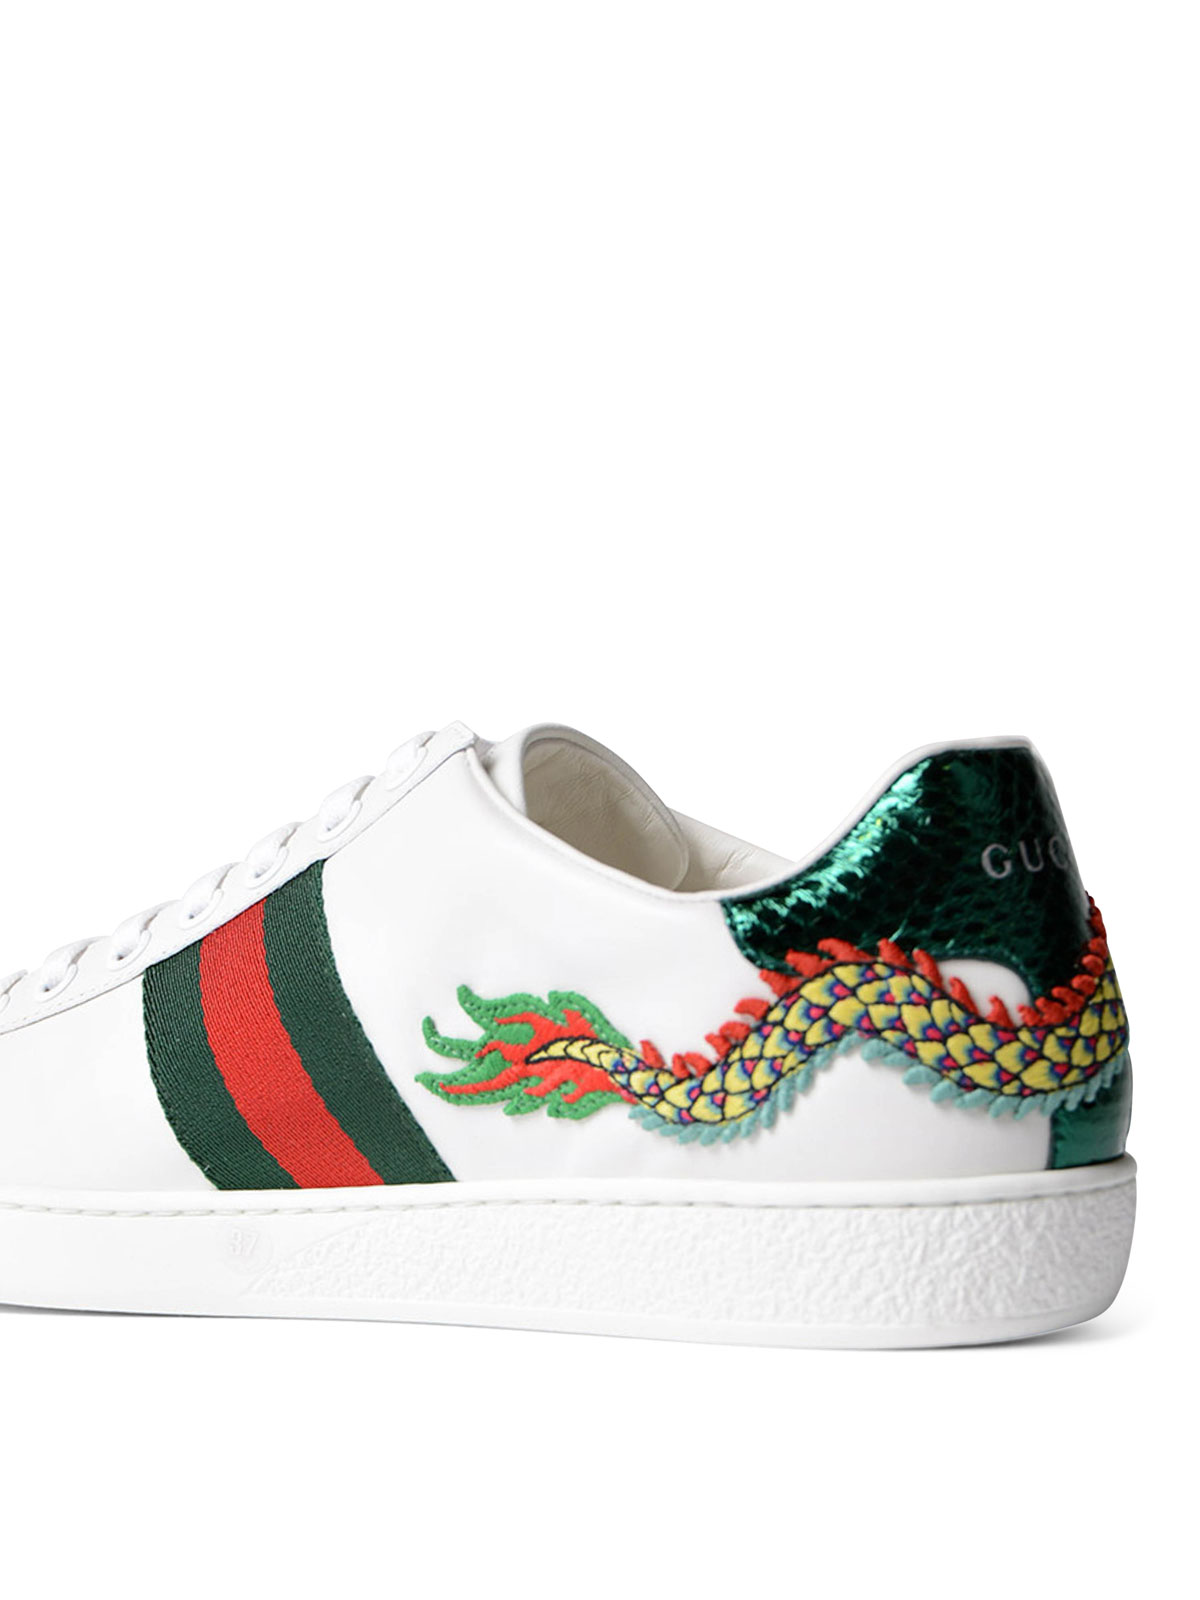 bffeadeaae8 Gucci - Ace embroidered low top sneakers - trainers - 475221A38G09064